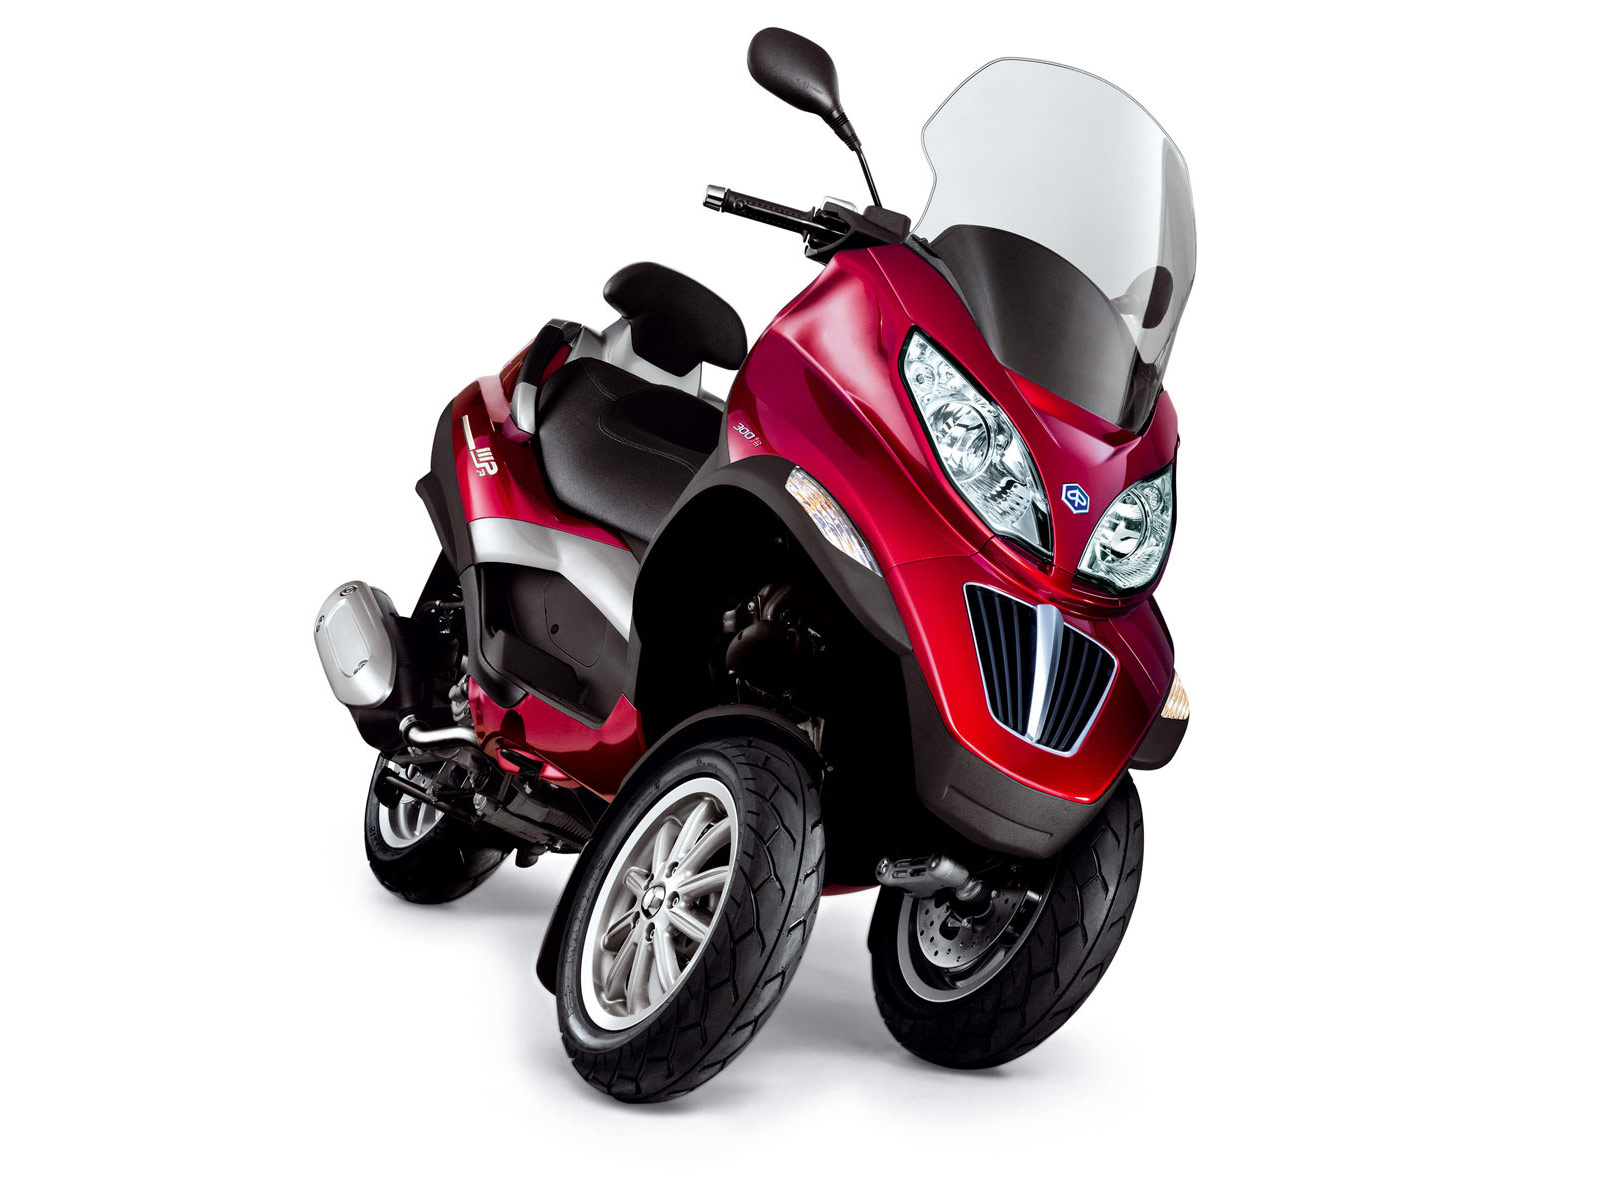 scooter accident lawyers info 2010 piaggio mp3 lt300ie pictures. Black Bedroom Furniture Sets. Home Design Ideas